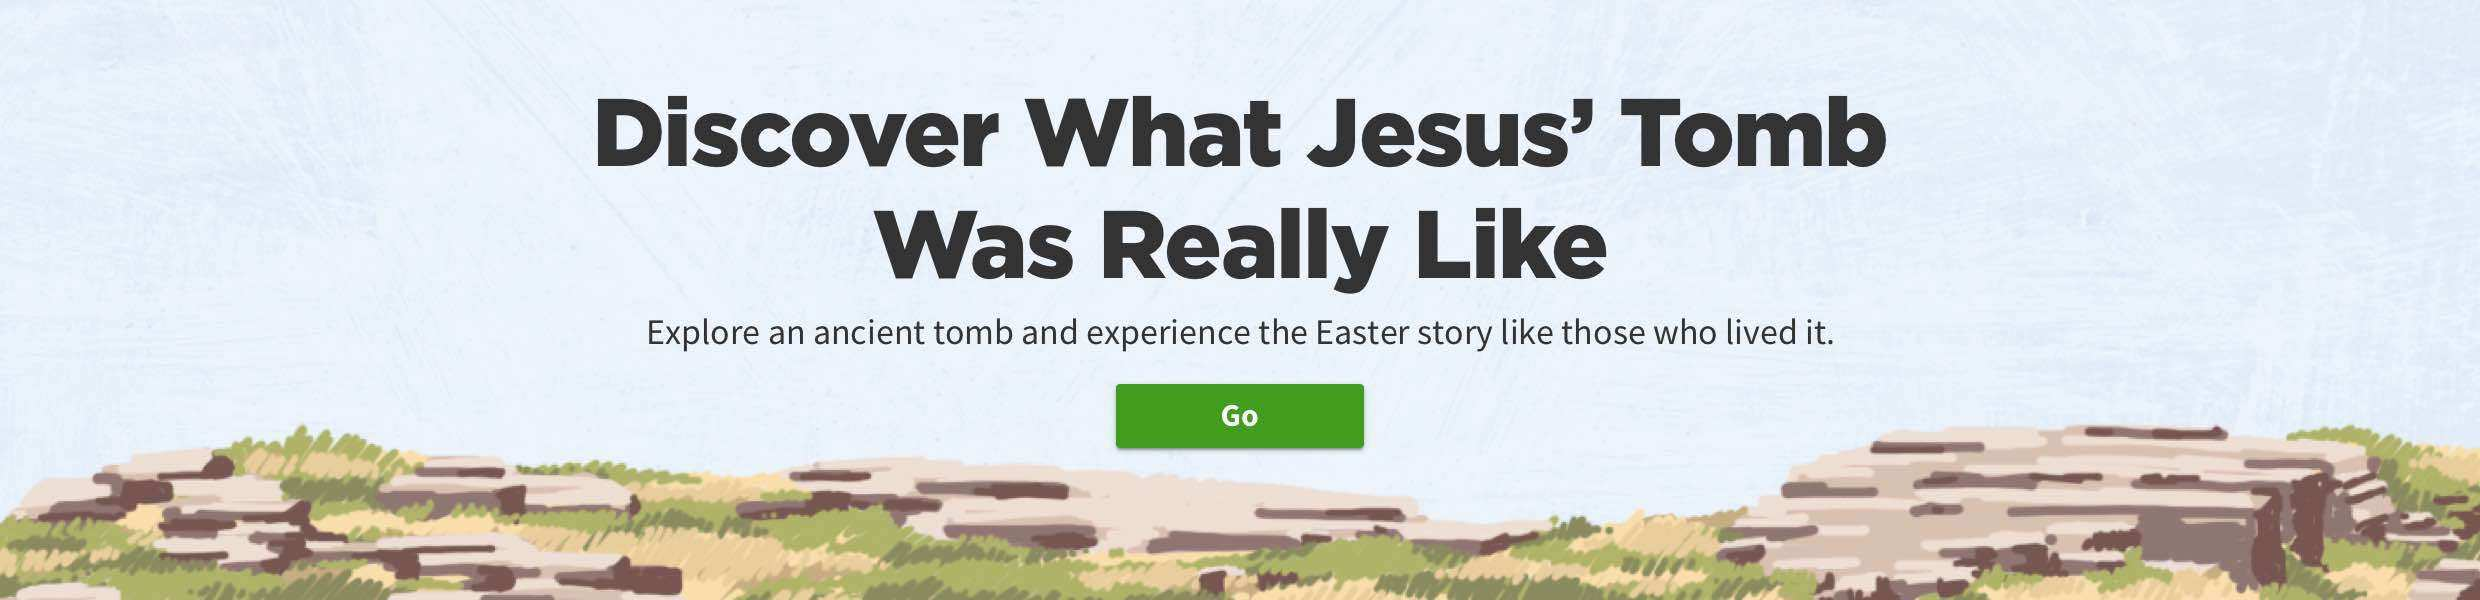 clickable image: Discover What Jesus' Tomb Was Really Like. Go.